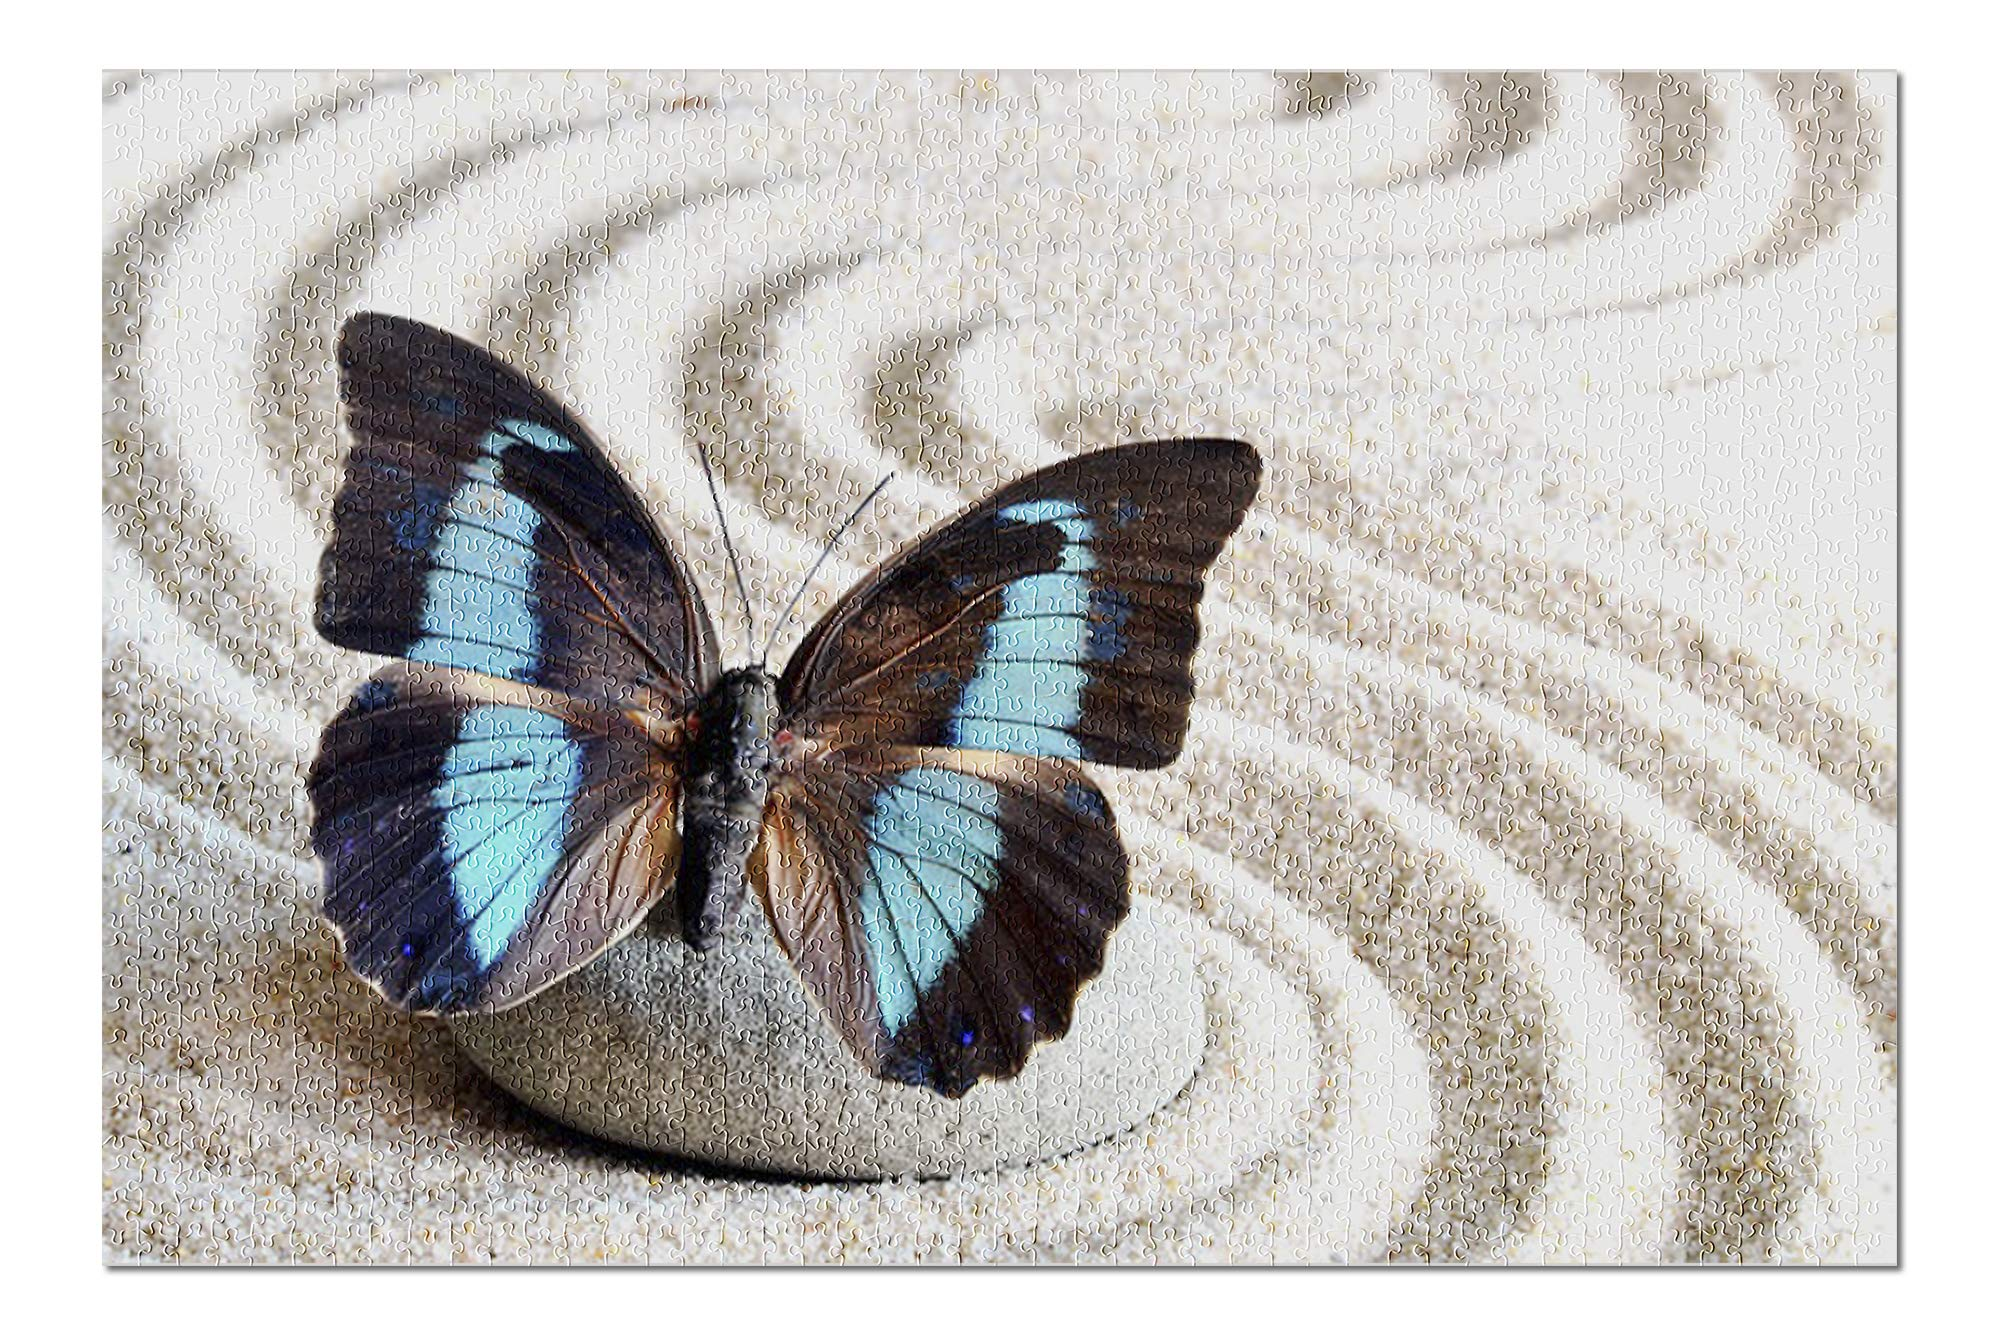 Blue Butterfly on Zen Rock and Sand 9000018 (19x27 Premium 1000 Piece Jigsaw Puzzle, Made in USA!)